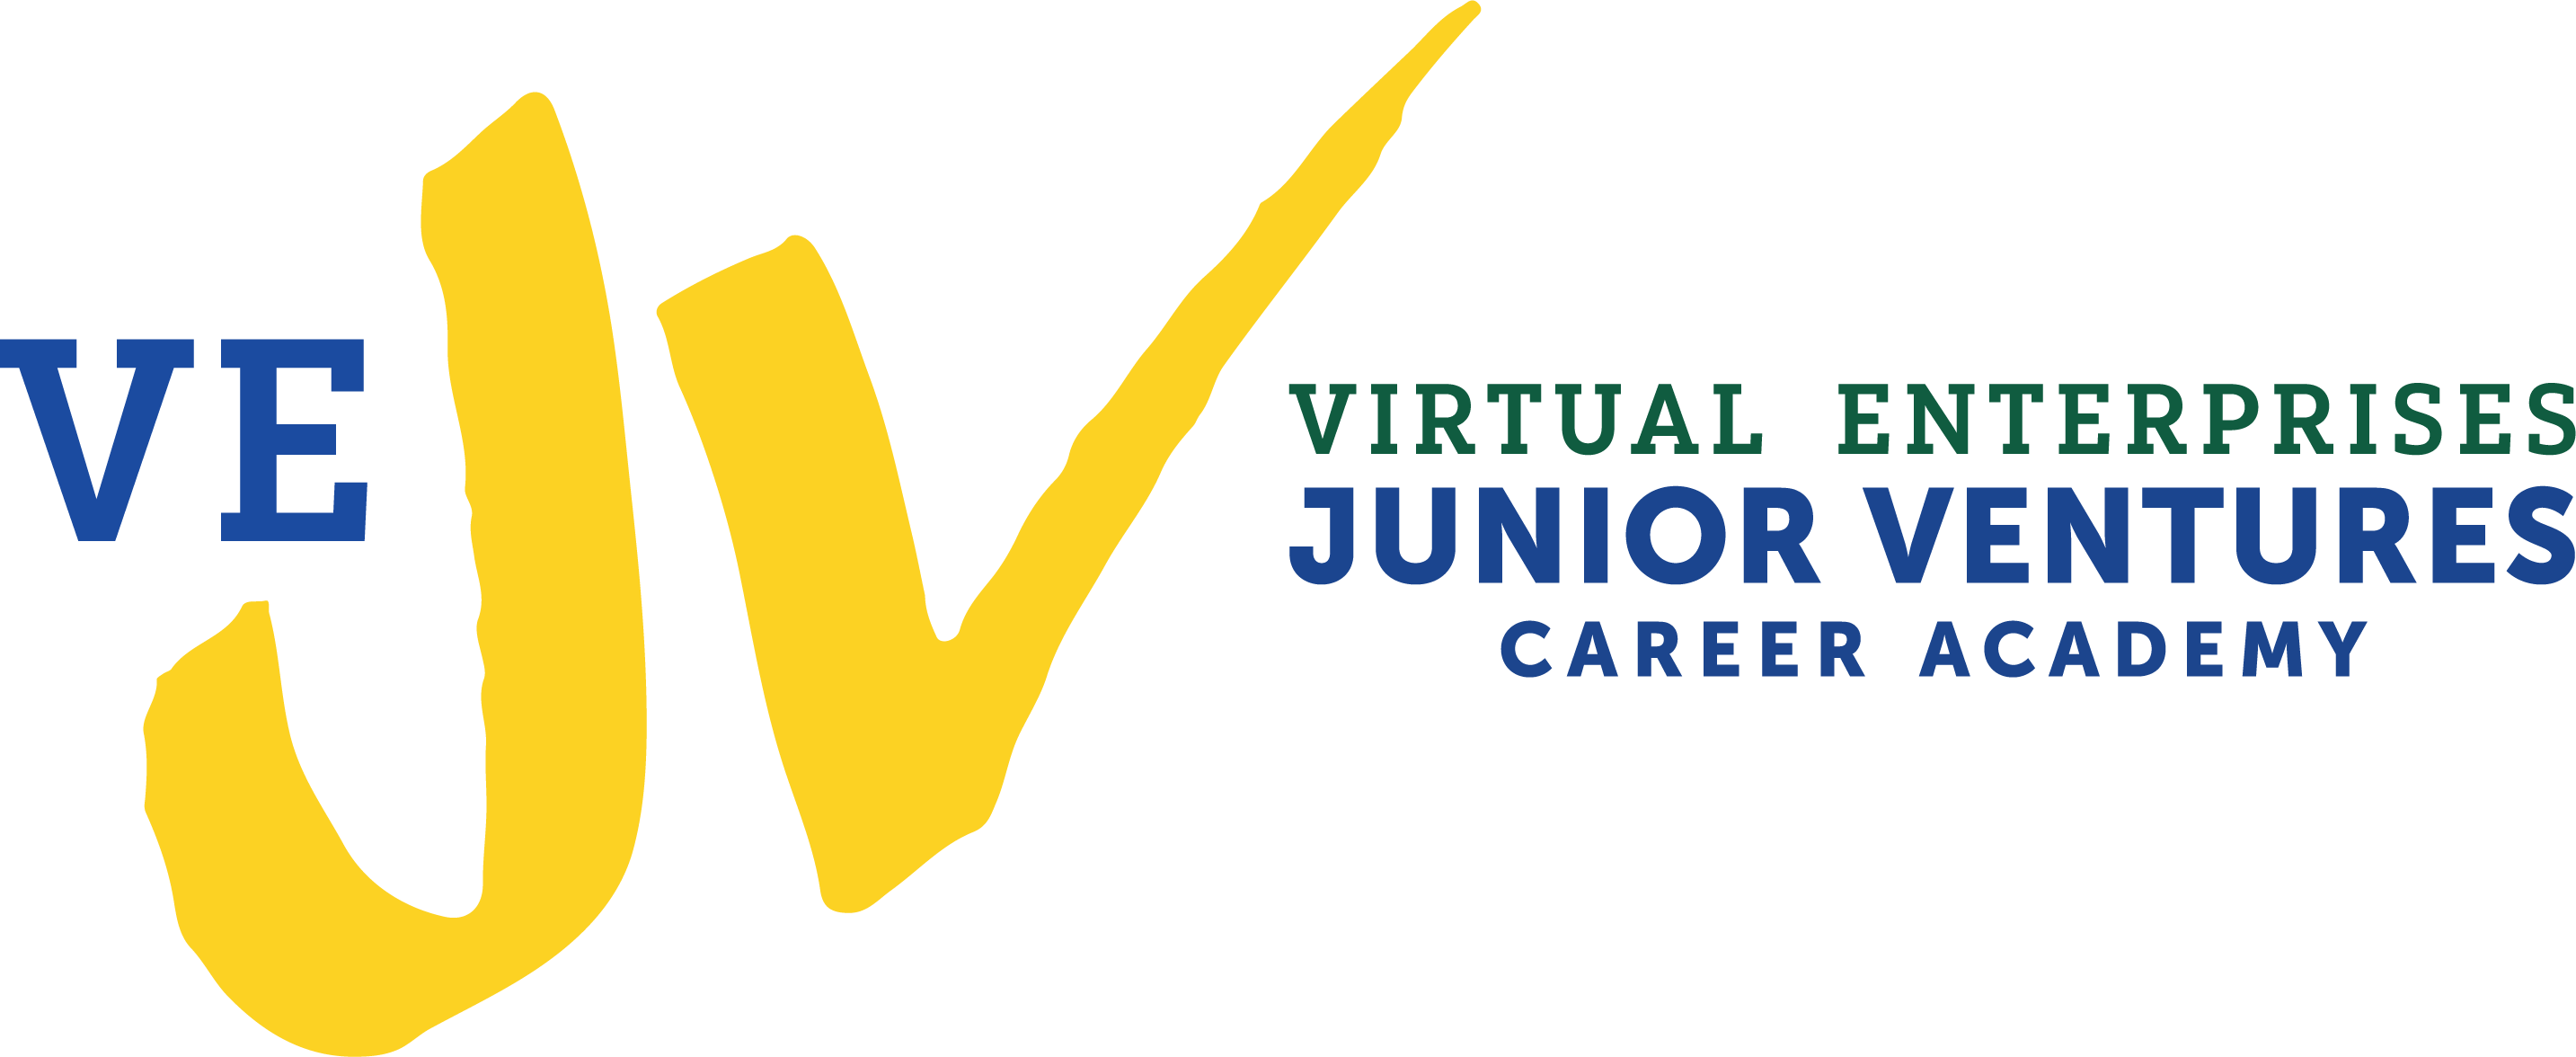 VE-JV Career Academy color logo